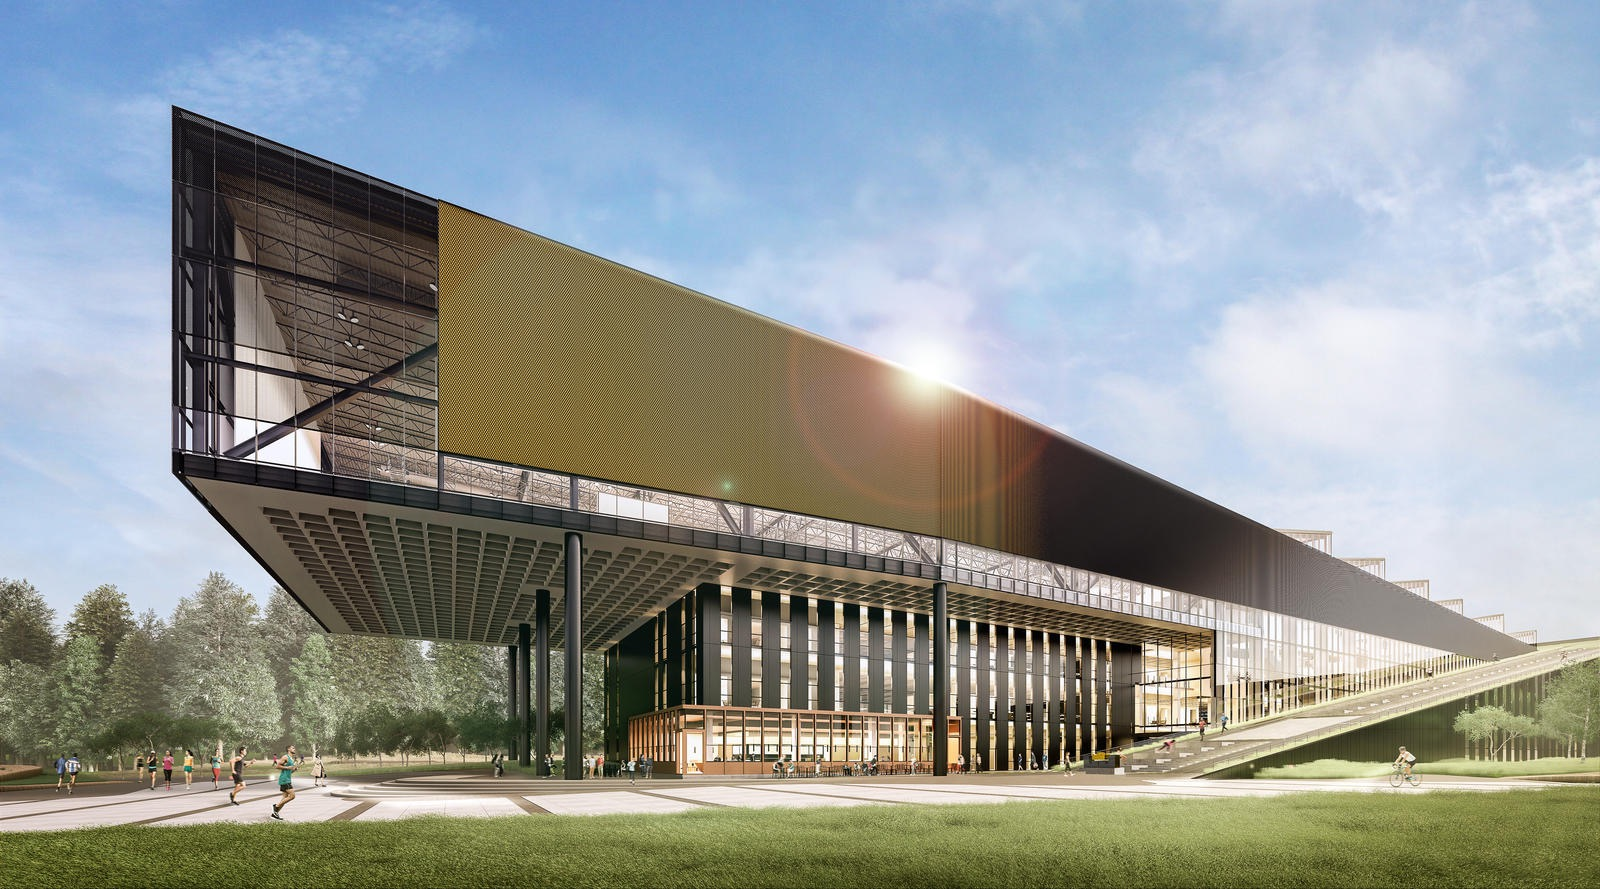 LeBron James Nike HQ Building Opens in 2020